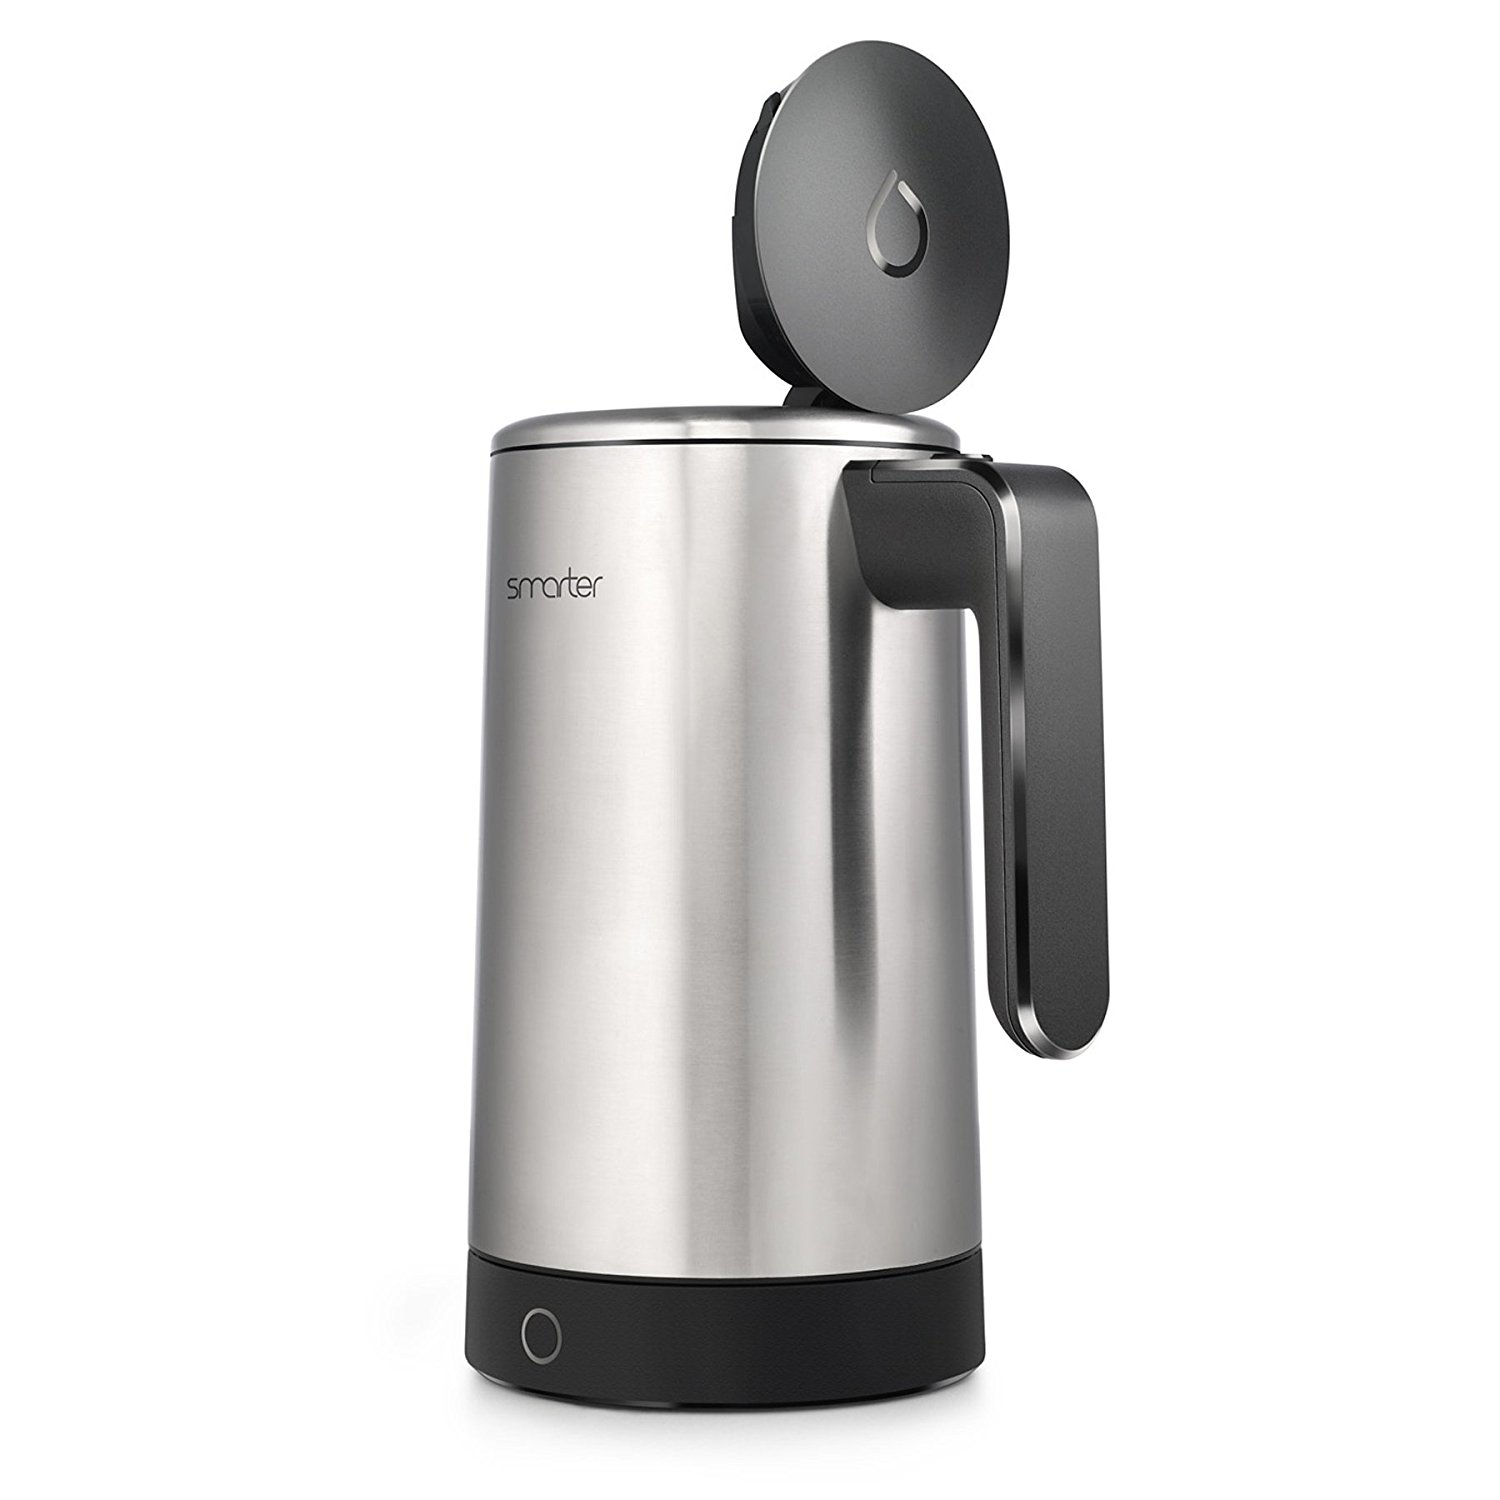 Ikettle 2.0  comes with uk plug and requires us power converter 1